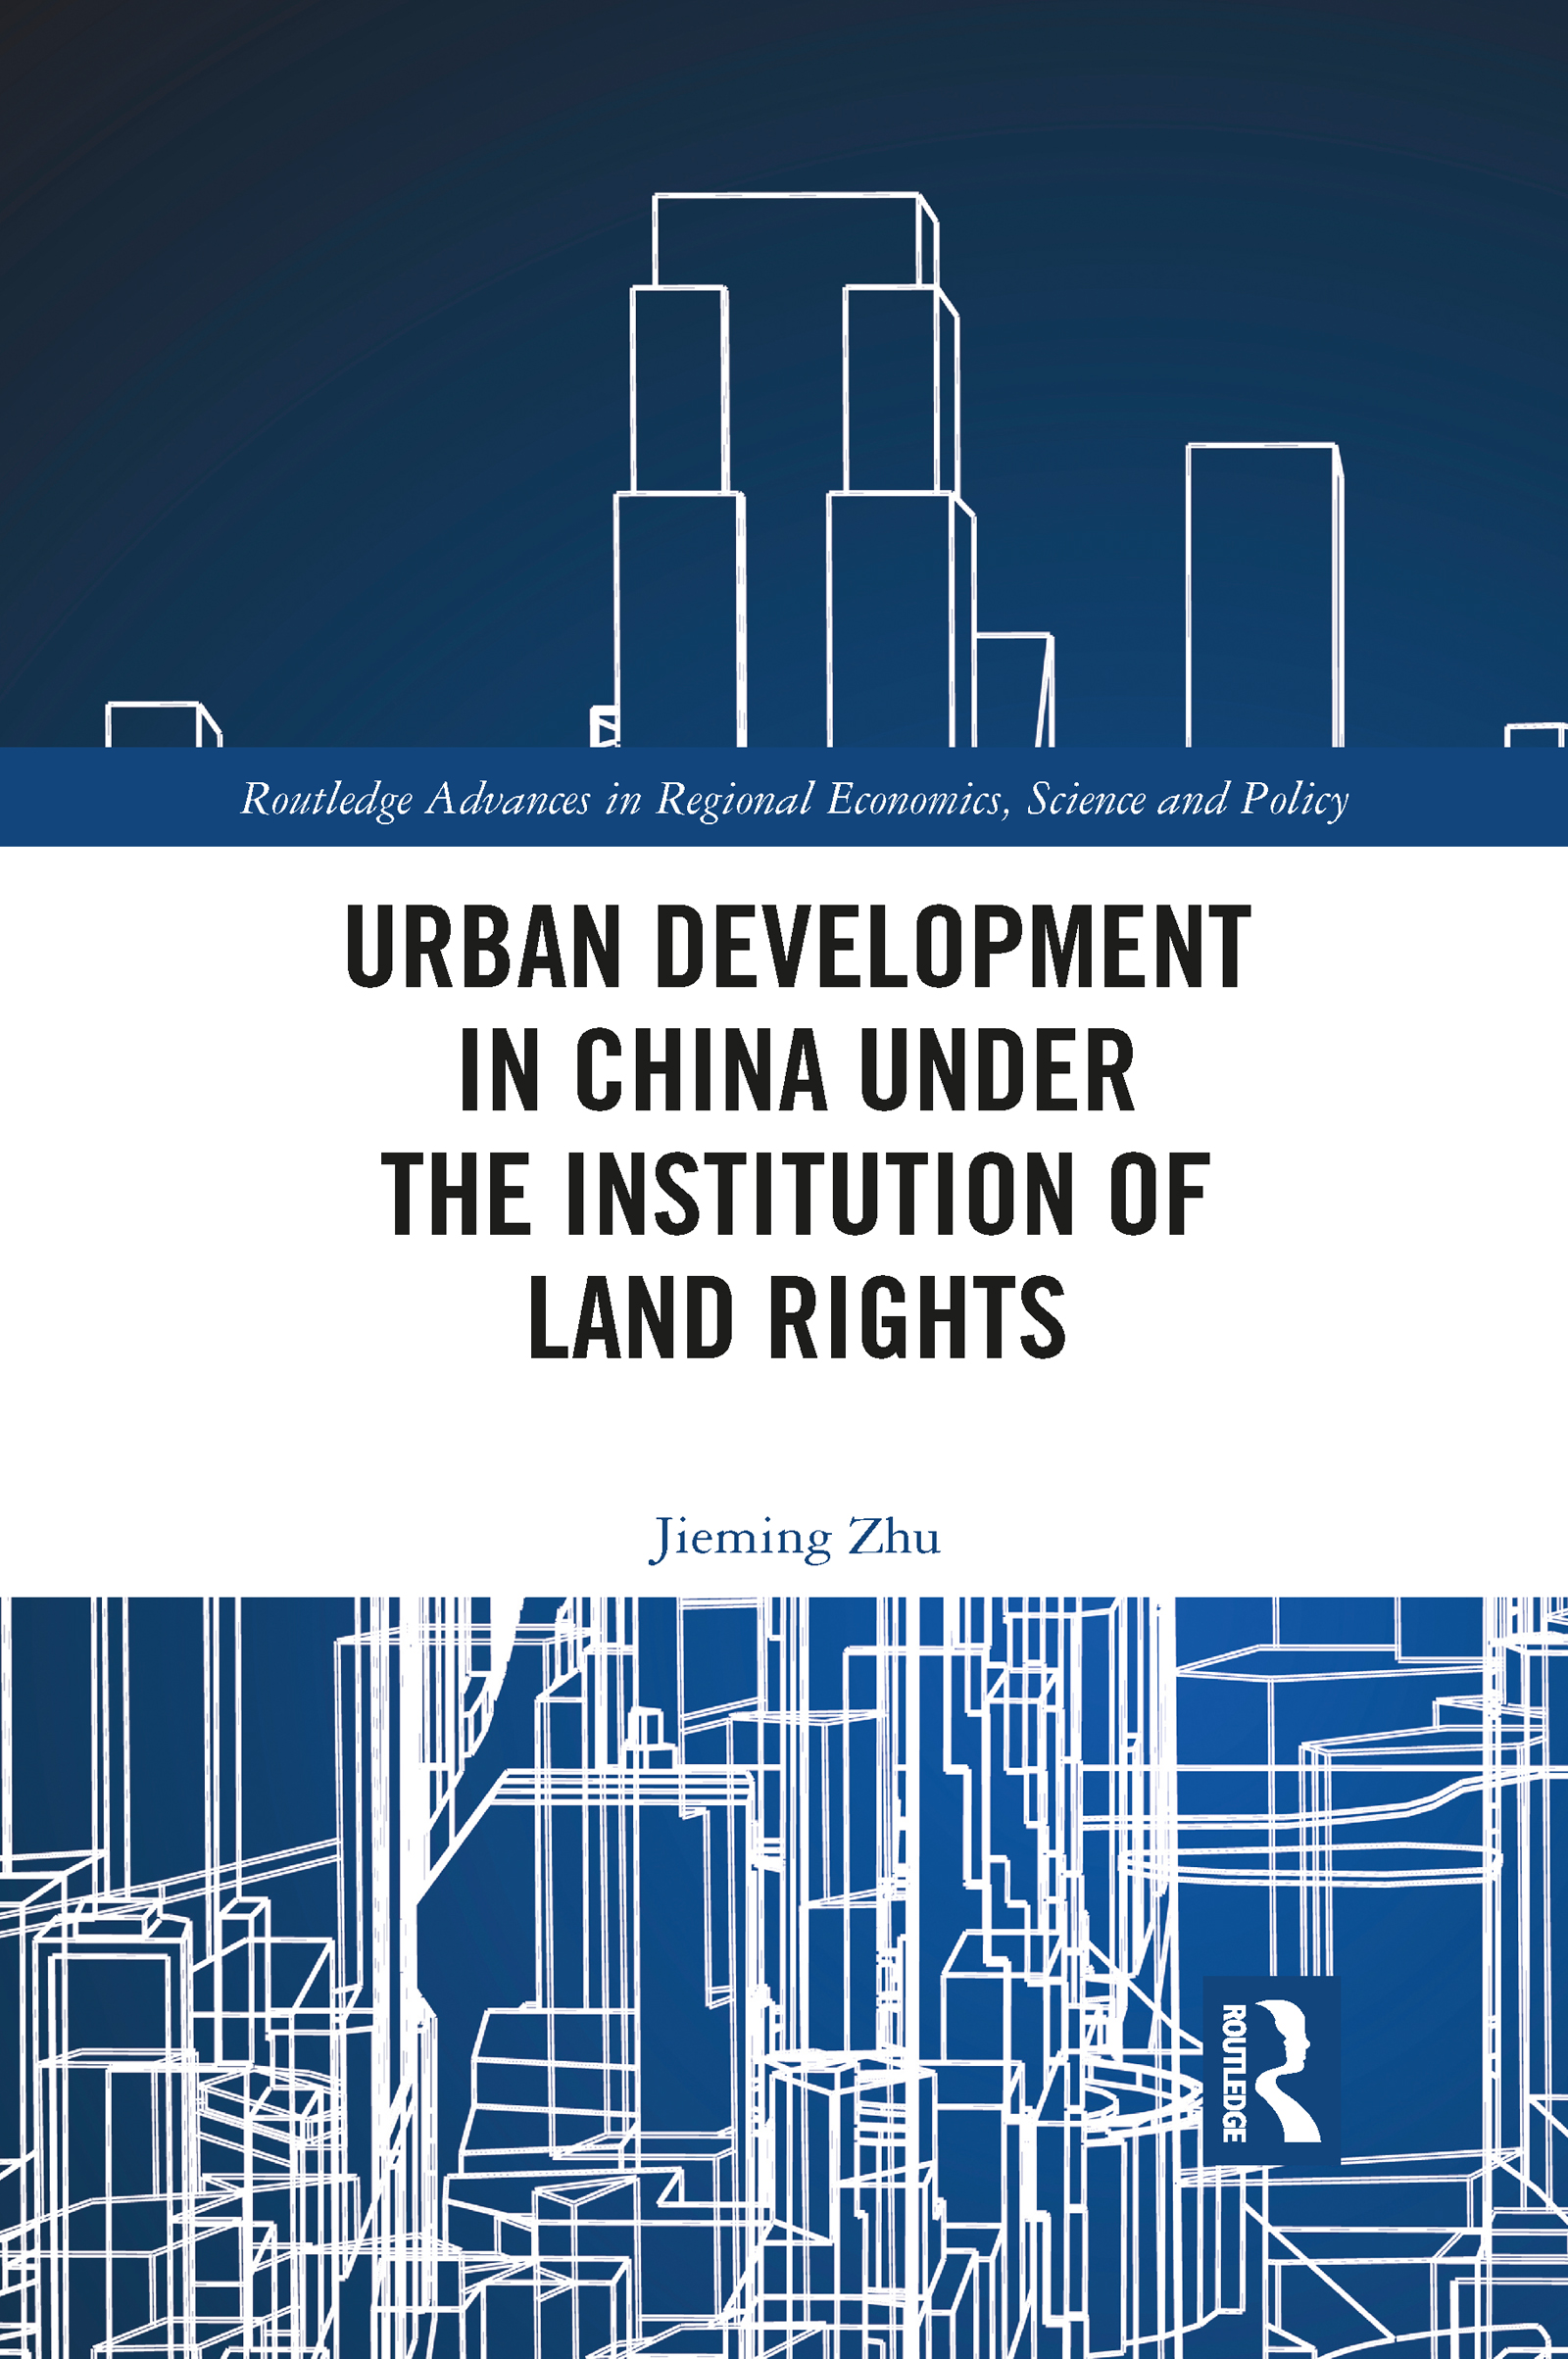 Urban Development in China under the Institution of Land Rights